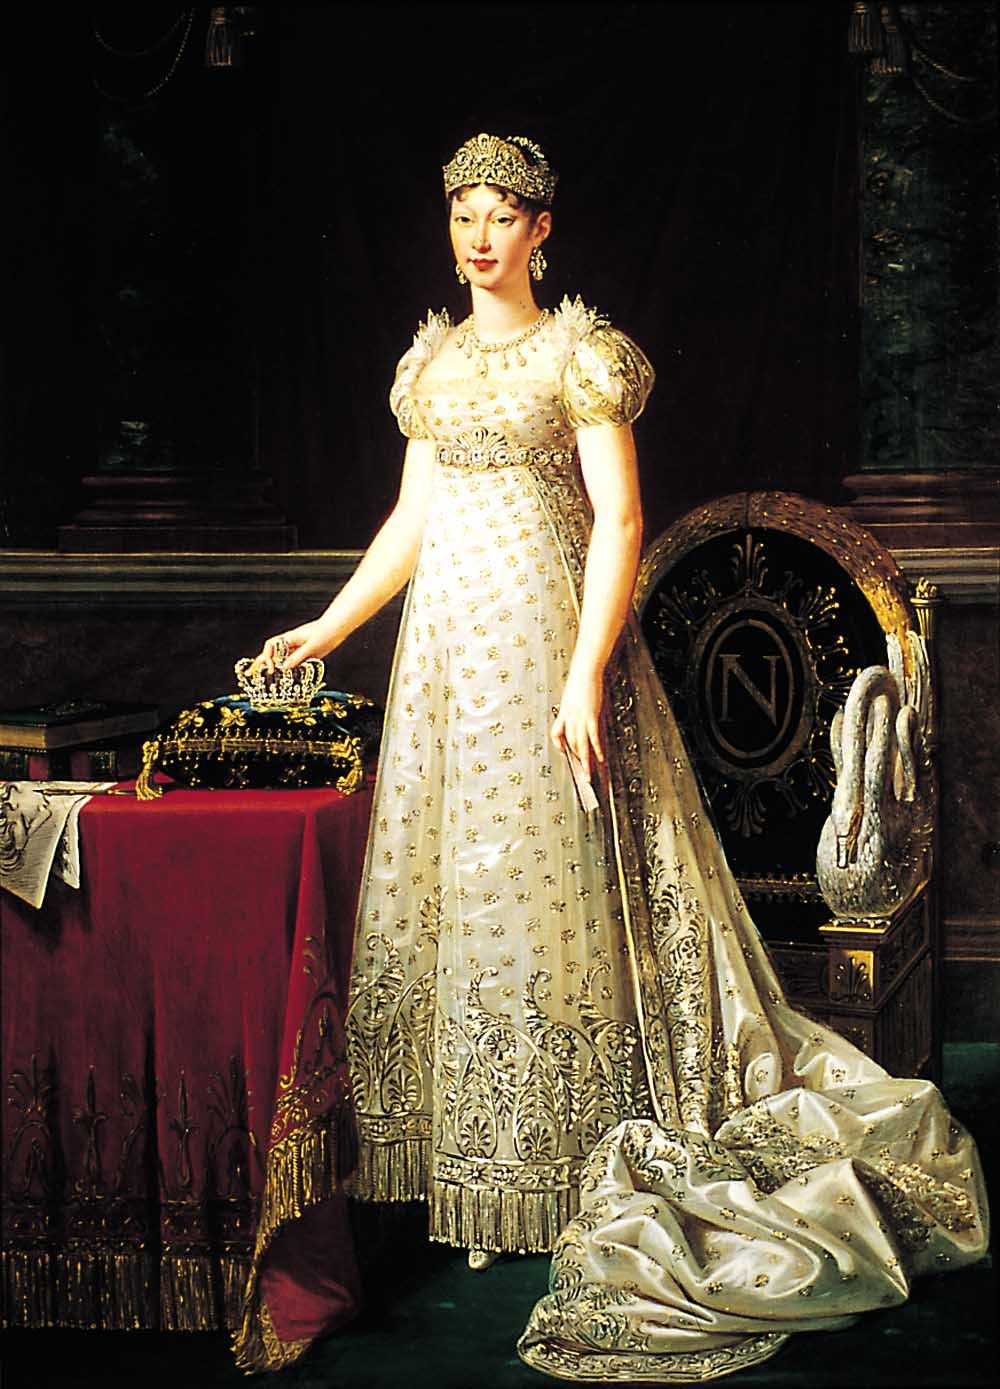 Marie-Louise of Austria, Empress of France